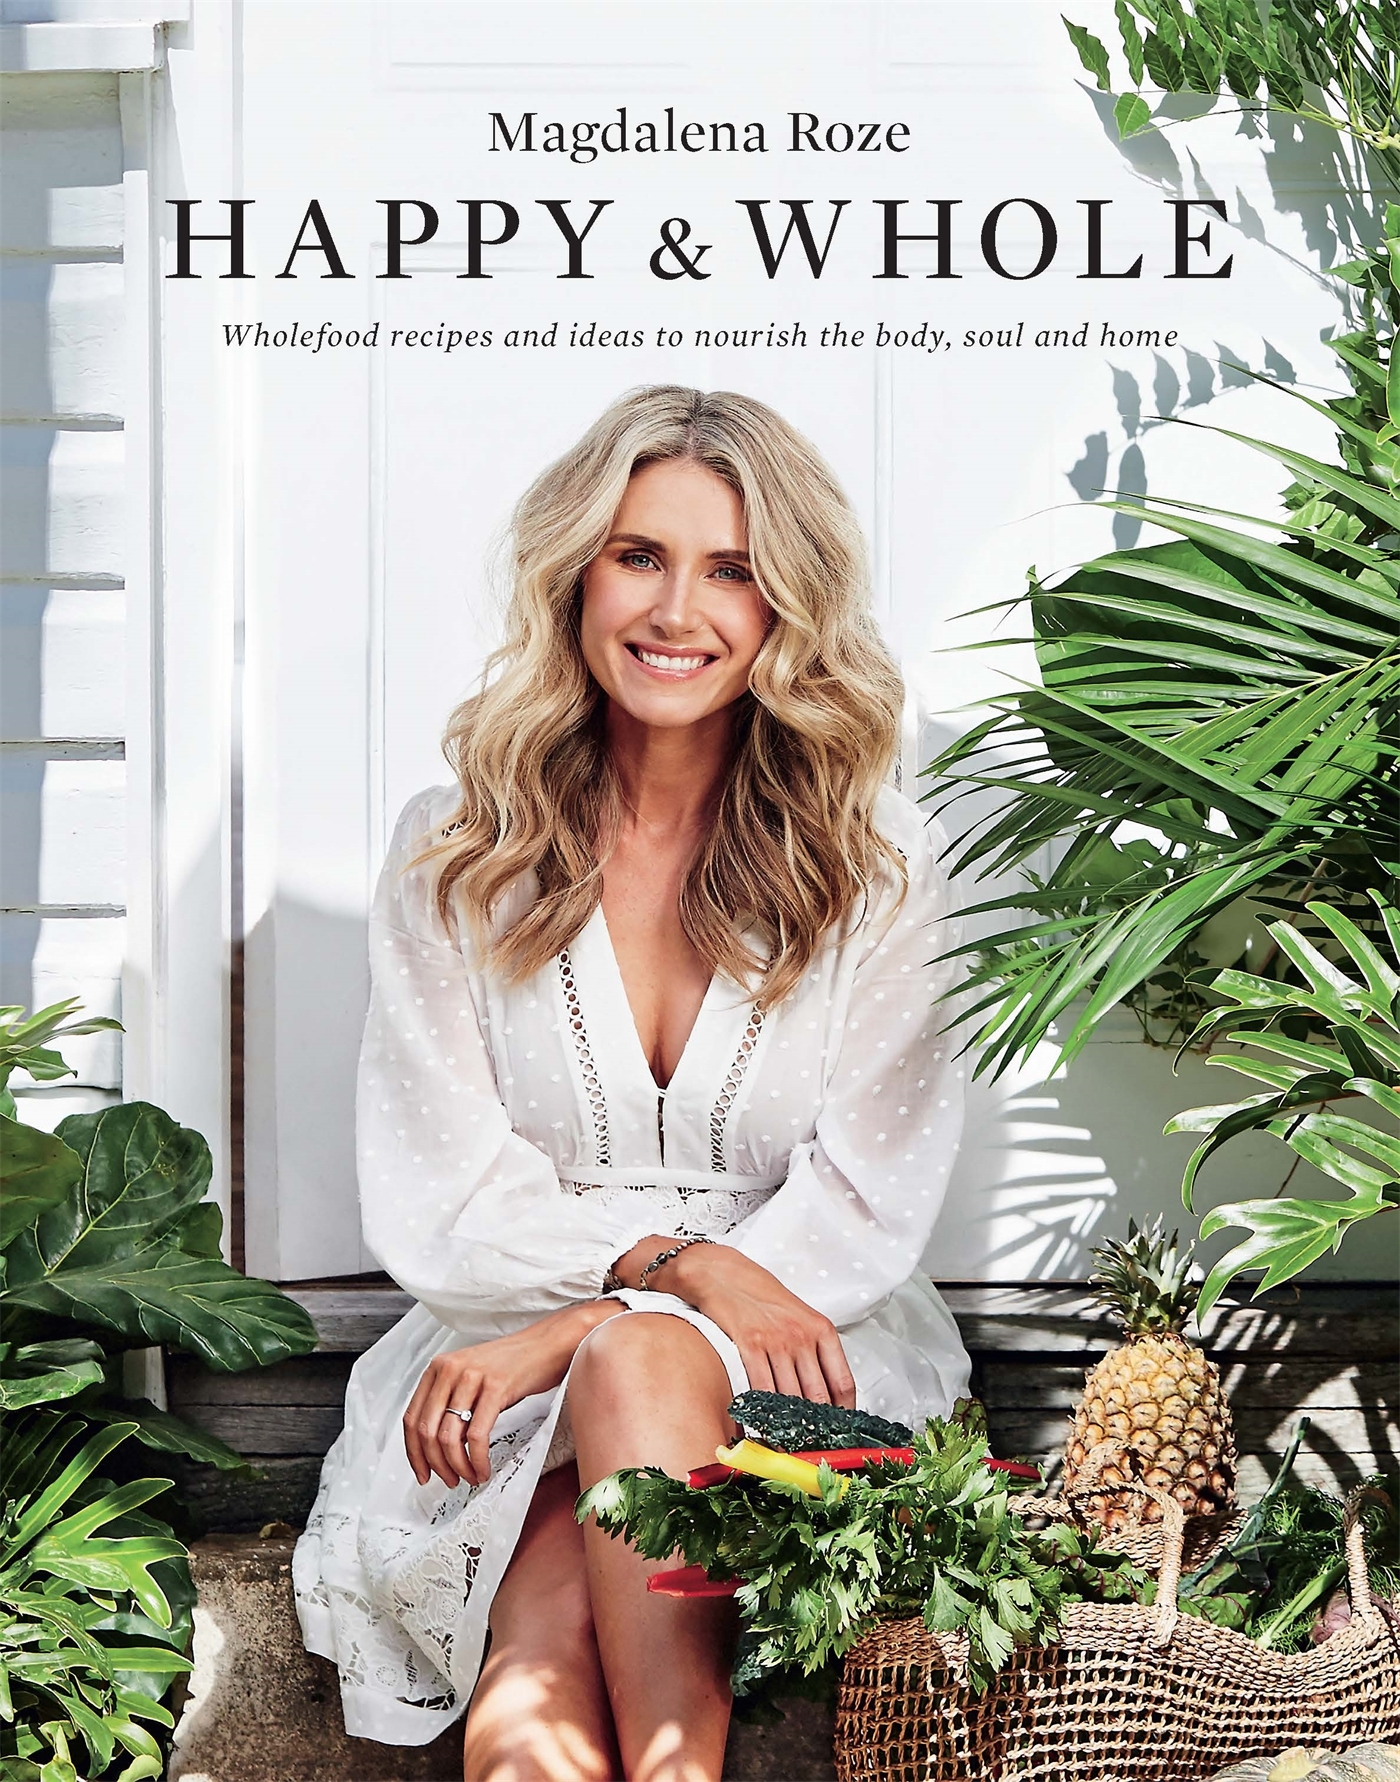 See Need Want Influencers Magdalena Roze Celebrity Cookbook Happy And Whole